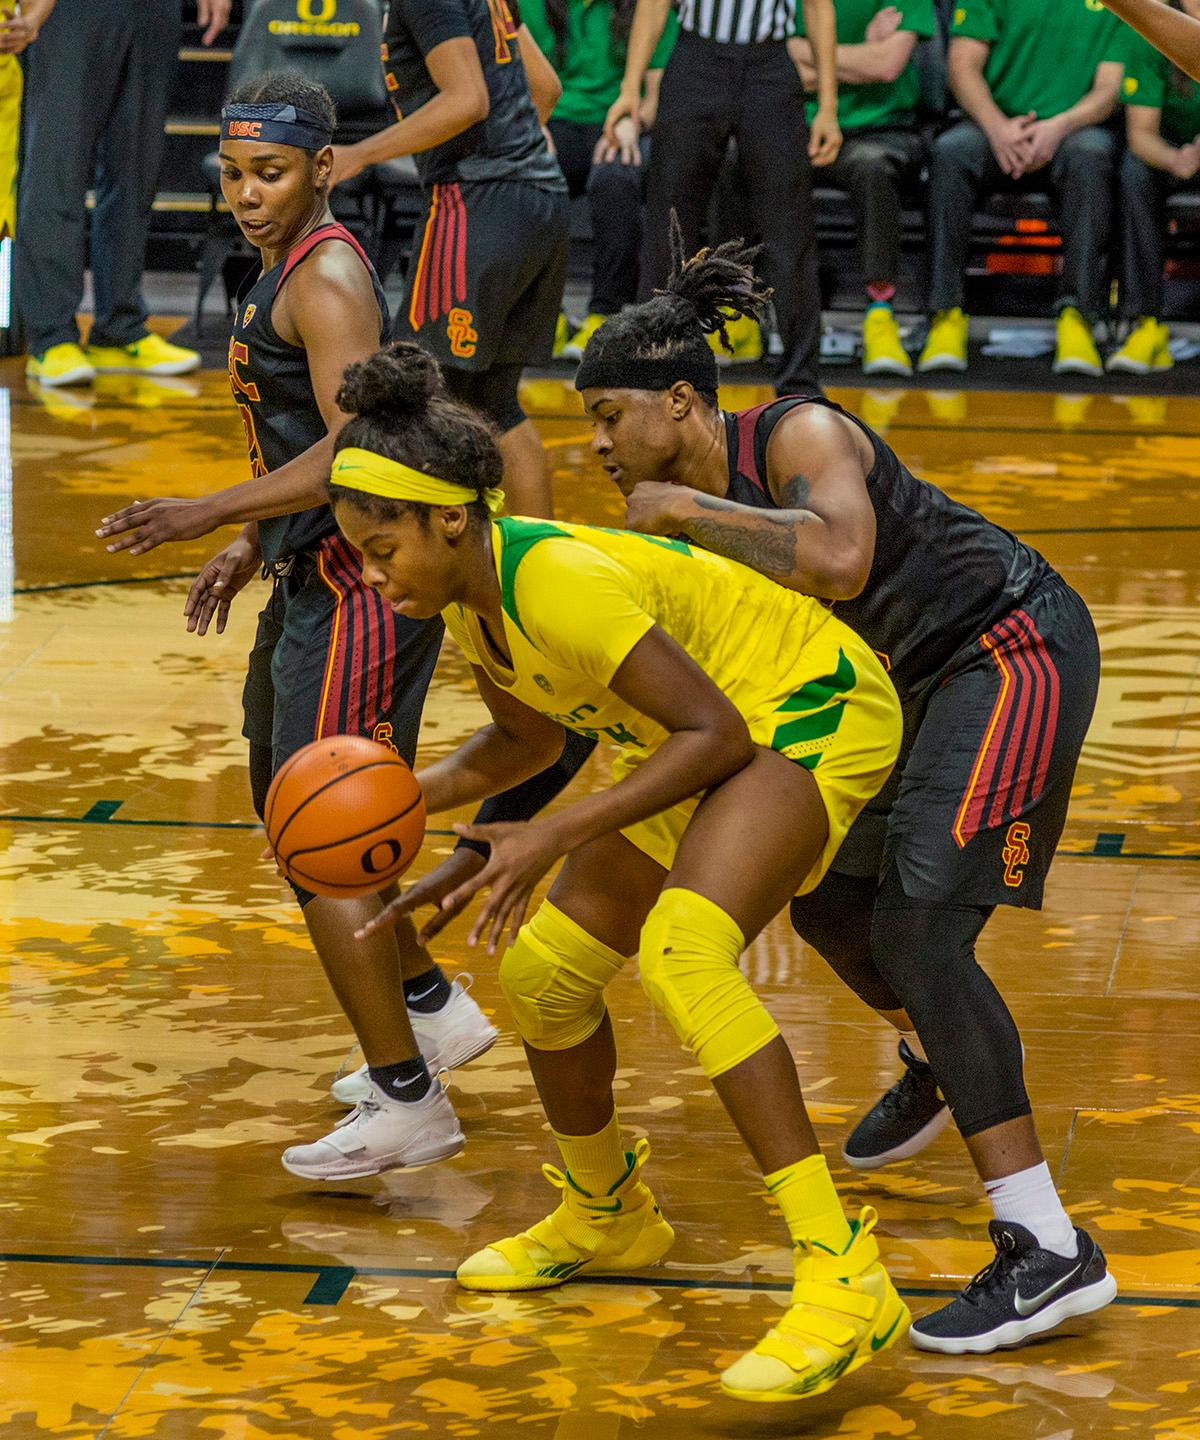 Oregon Ducks Ruthy Hebard (#24, with ball) plays keep away from USC Kristen Simon (#35). The Oregon Ducks defeated the USC Trojans 80-74 on Friday at Matthew Knight Arena in a game that went into double overtime. Lexi Bando sealed the Ducks' victory by scoring a three-pointer in the closing of the game. Ruthy Hebard set a new NCAA record of 30 consecutive field goals over three games, the old record being 28. Ruthy Hebard got a double-double with 27 points and 10 rebounds, Mallory McGwire also had 10 rebounds. The Ducks had four players in double digits: Ruthy Hebard with 27; Maite Cazorla with 17; Sabrina Ionescu with 15; and Lexi Bando with 11. The Ducks are now 24-4, 13-2 in the Pac-12, and are tied for first with Stanford. Photo by Dan Morrison, Oregon News Lab